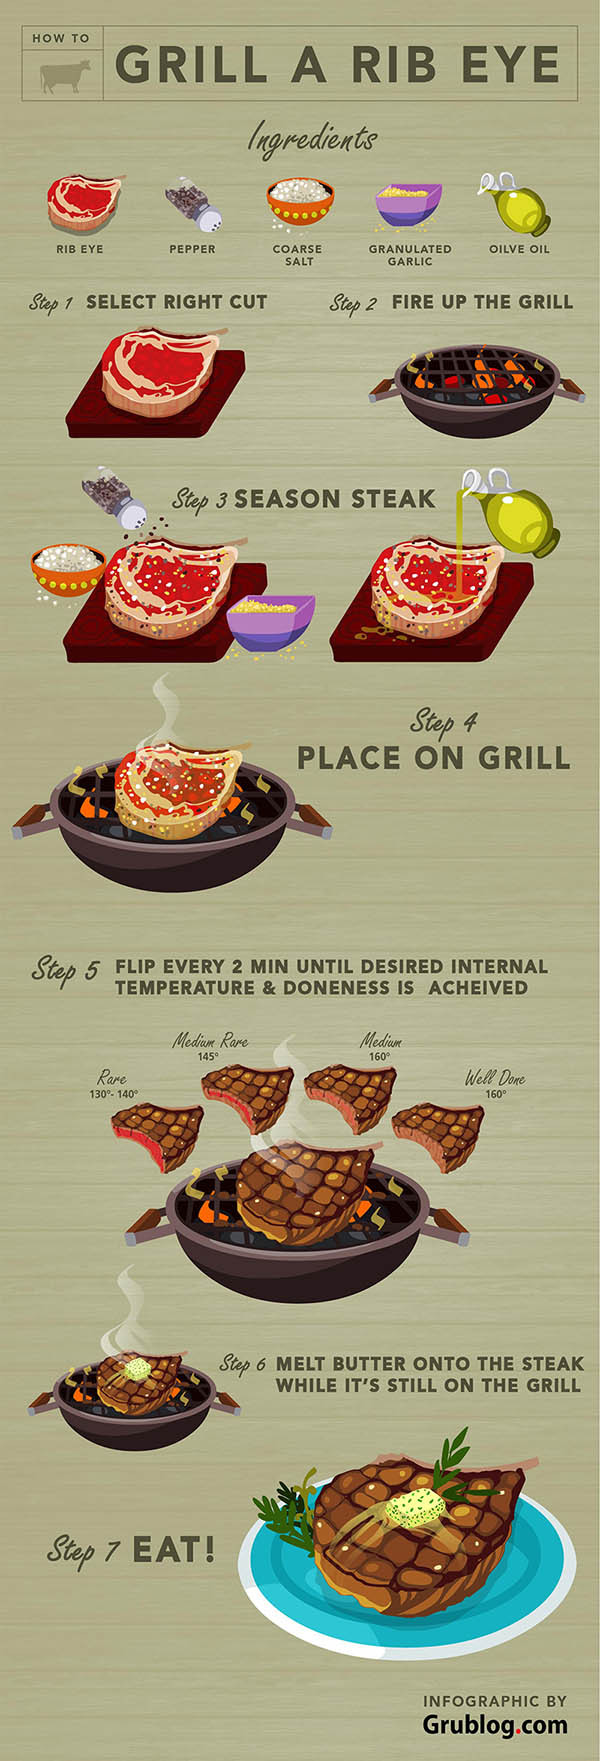 How to grill a rib eye